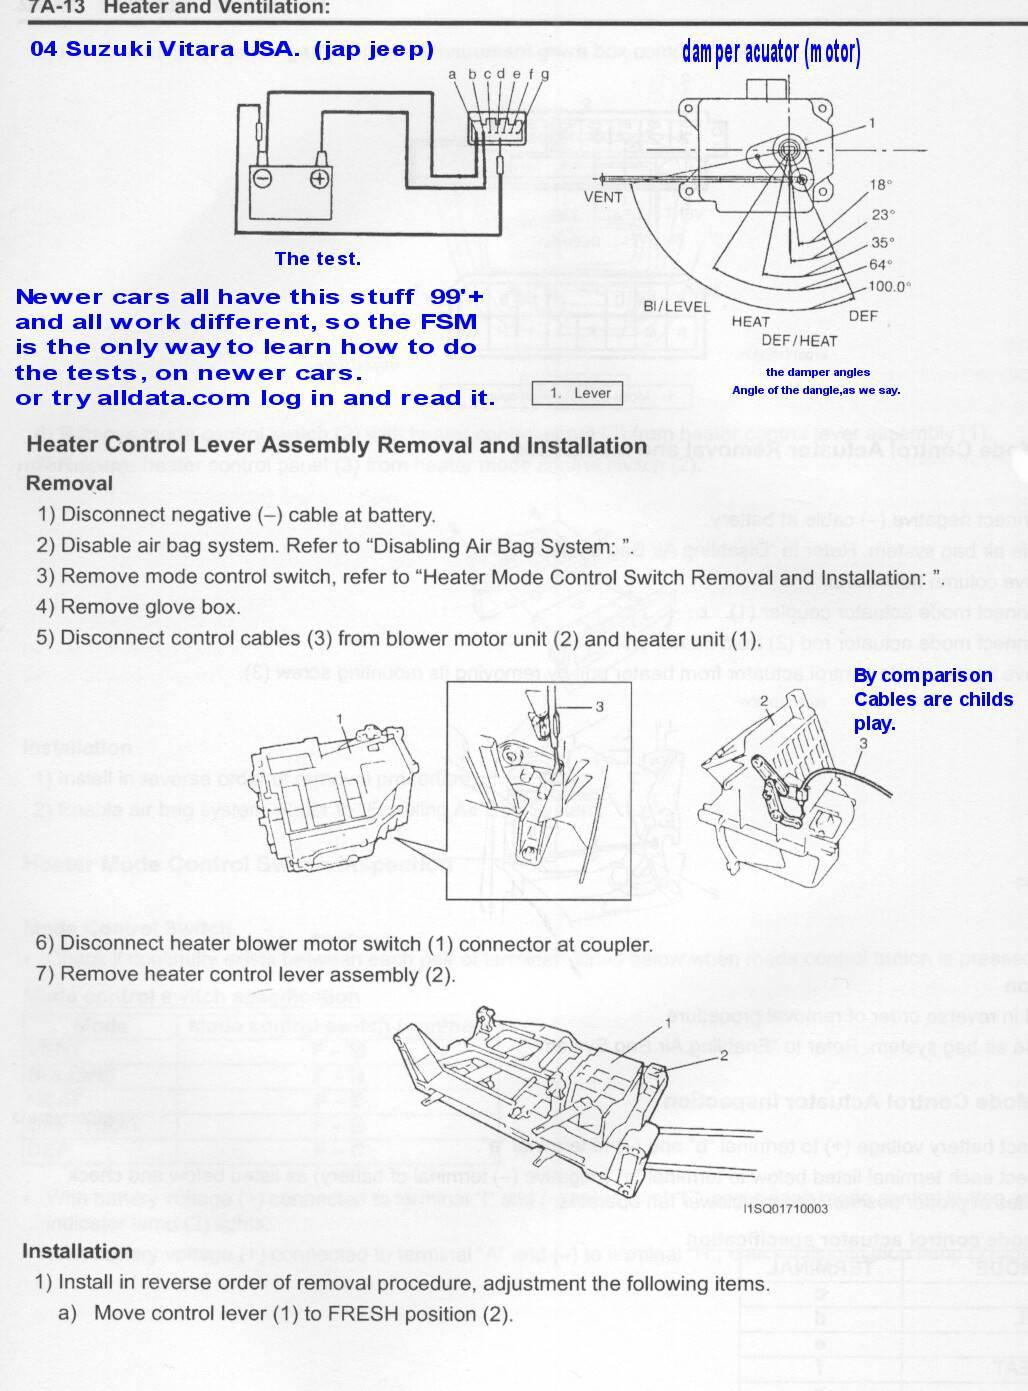 Heater In Cab Has Issues Suzuki 2 0 Engine Diagram Fsm Factory Service Manual As Sold At Your Dealer Or Used Fleabay Helmcom Suzukis Are Here Pitstop